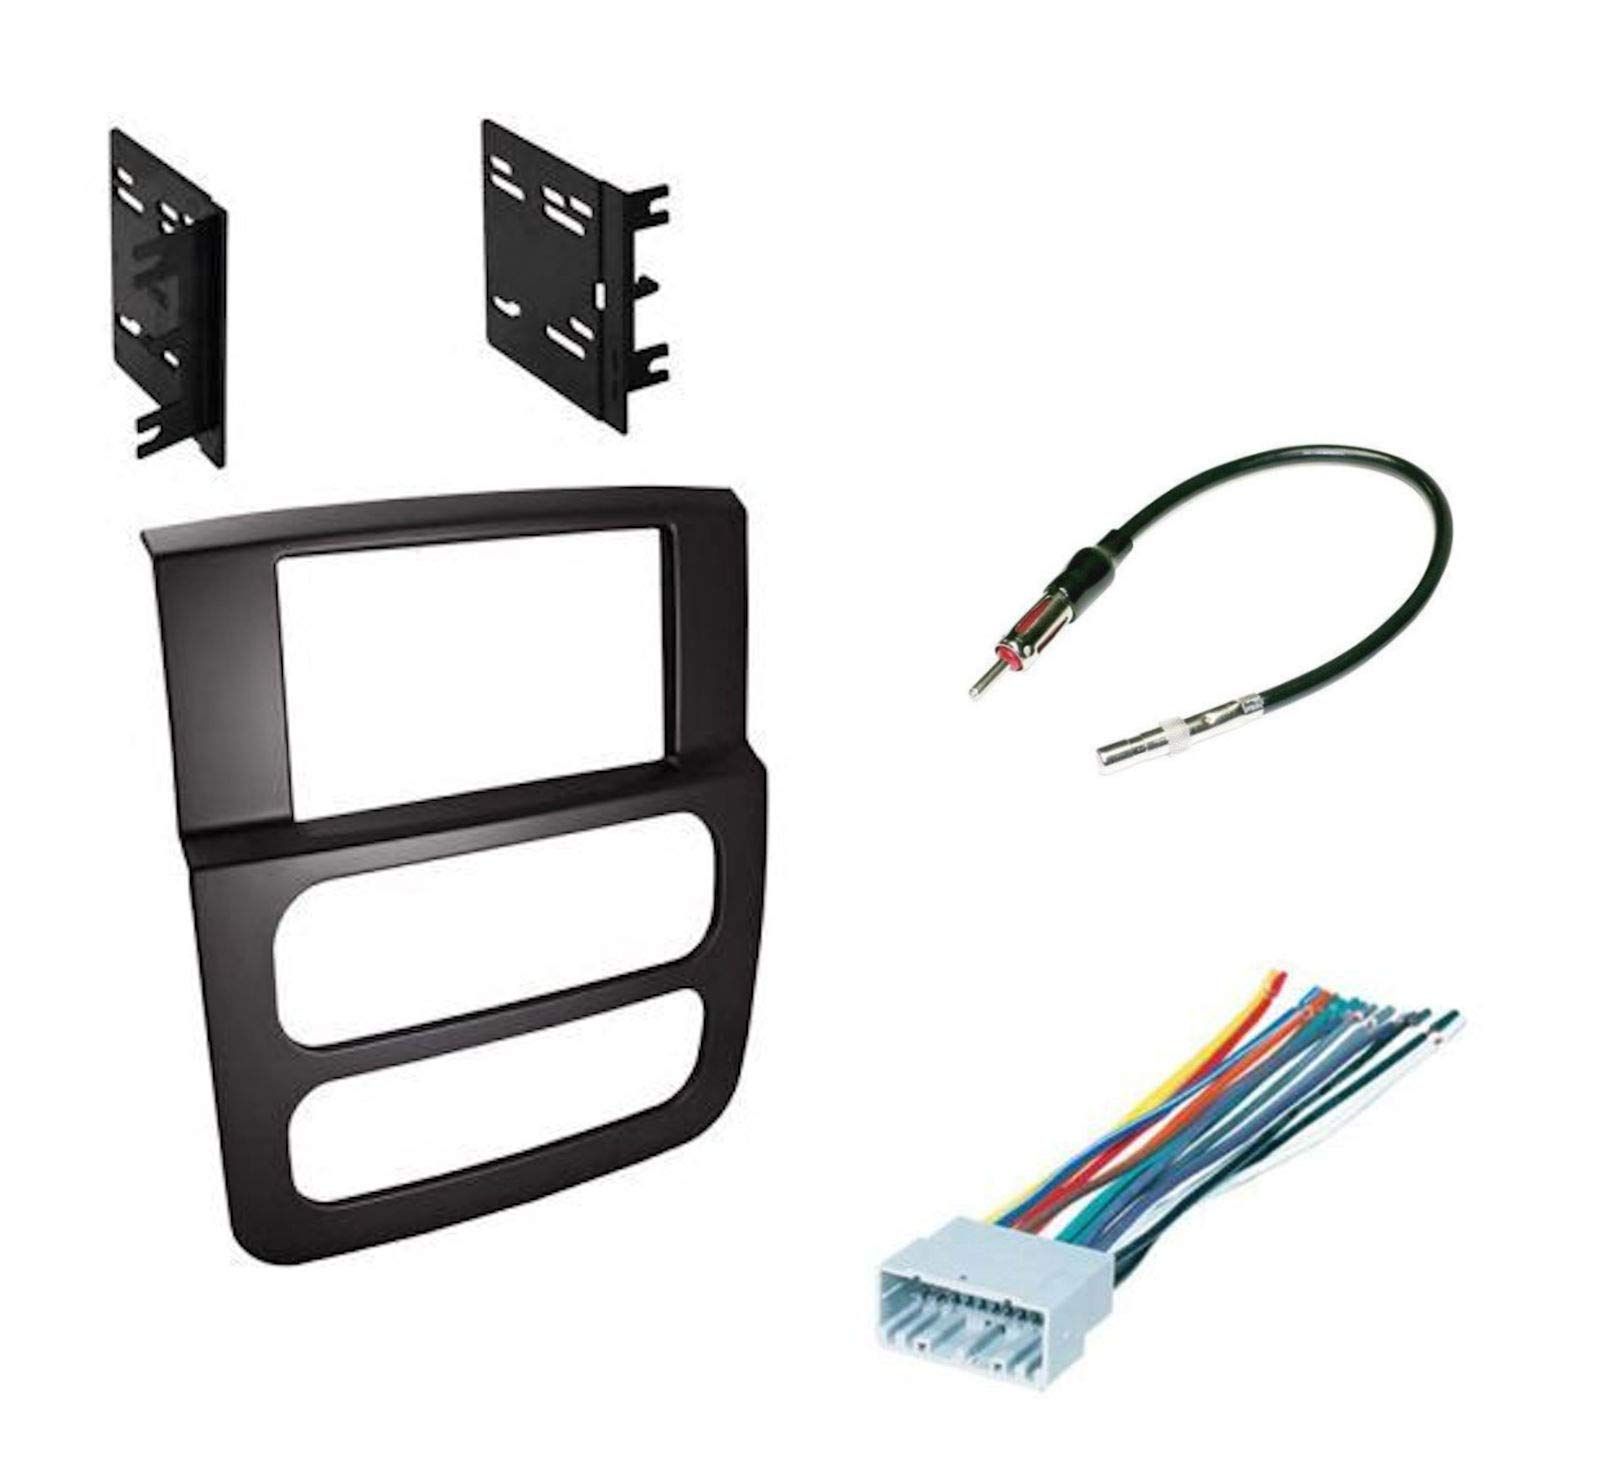 Double Din Dash Kit w/Harness and Antenna for 2002-2005 Dodge Ram Pickup 1500 by IMC Audio